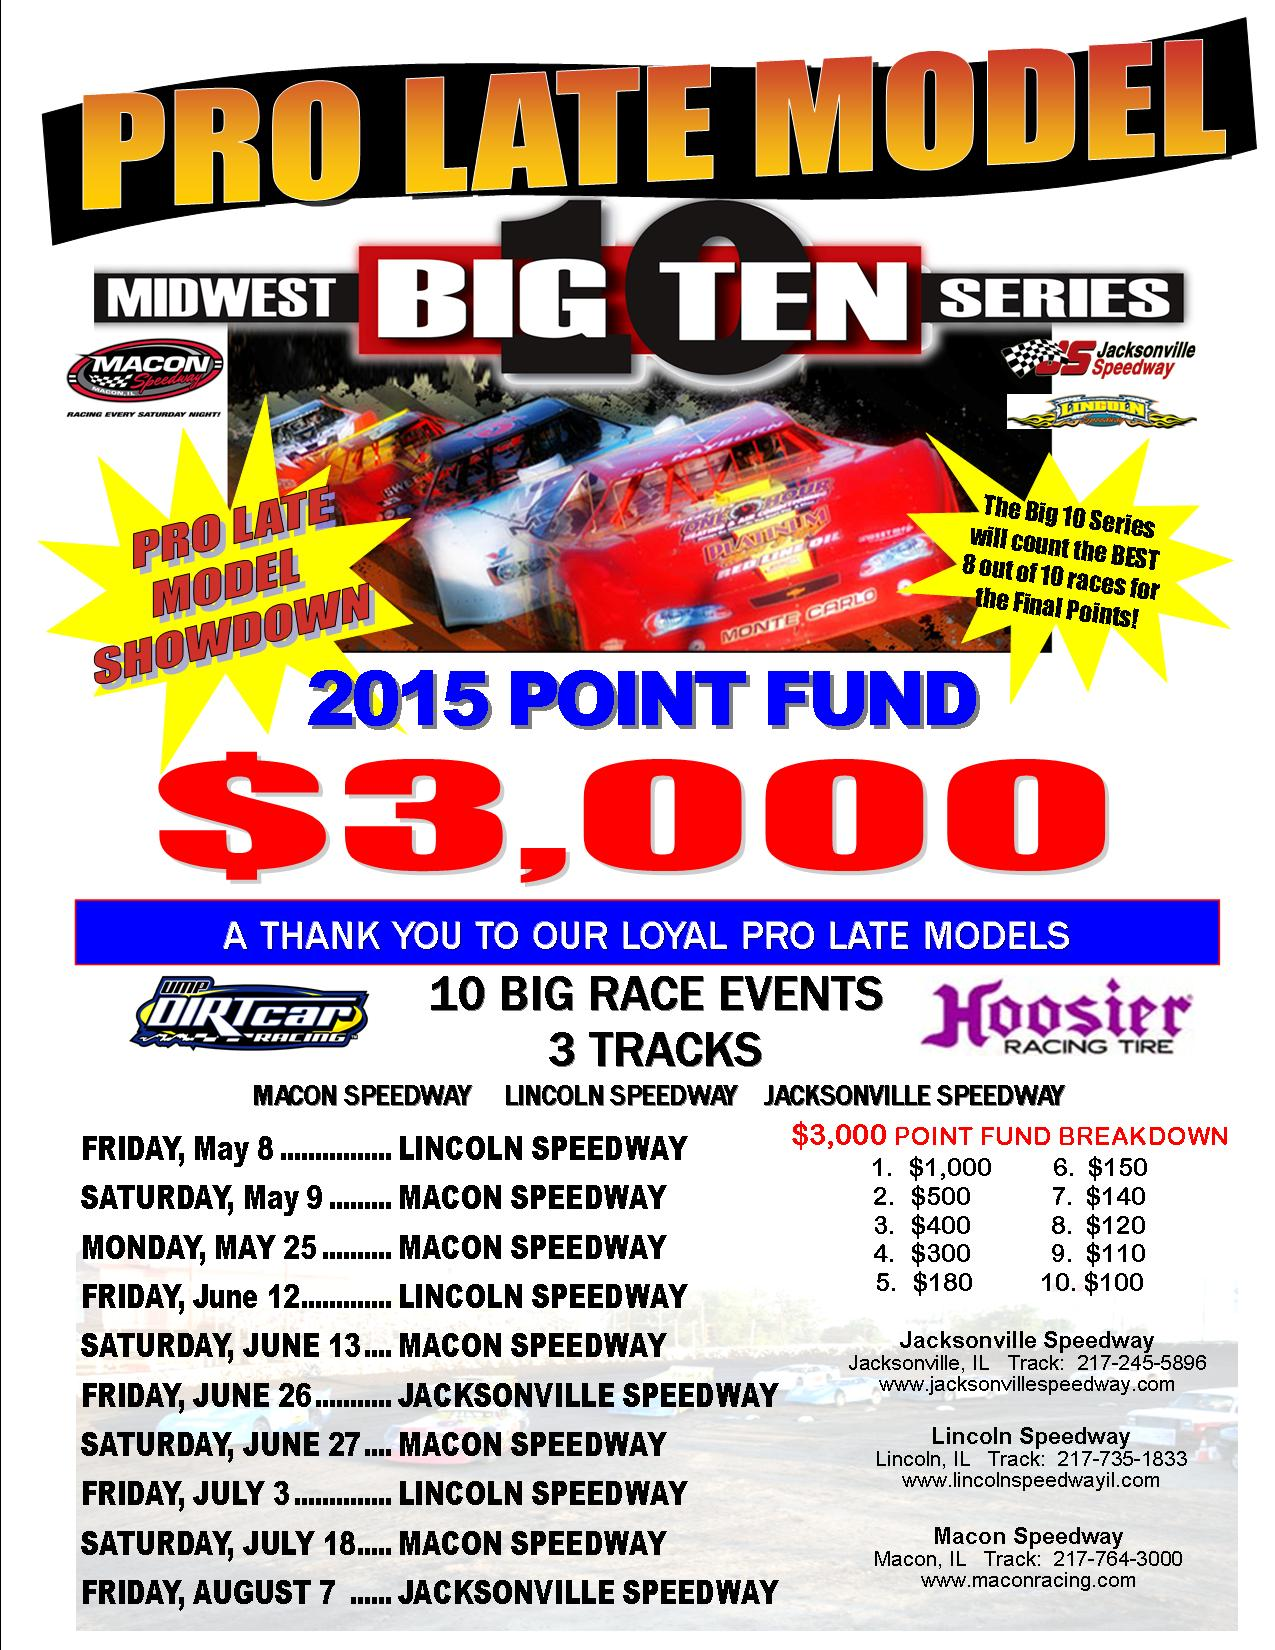 Midwest Big Ten Series Pro Late Model